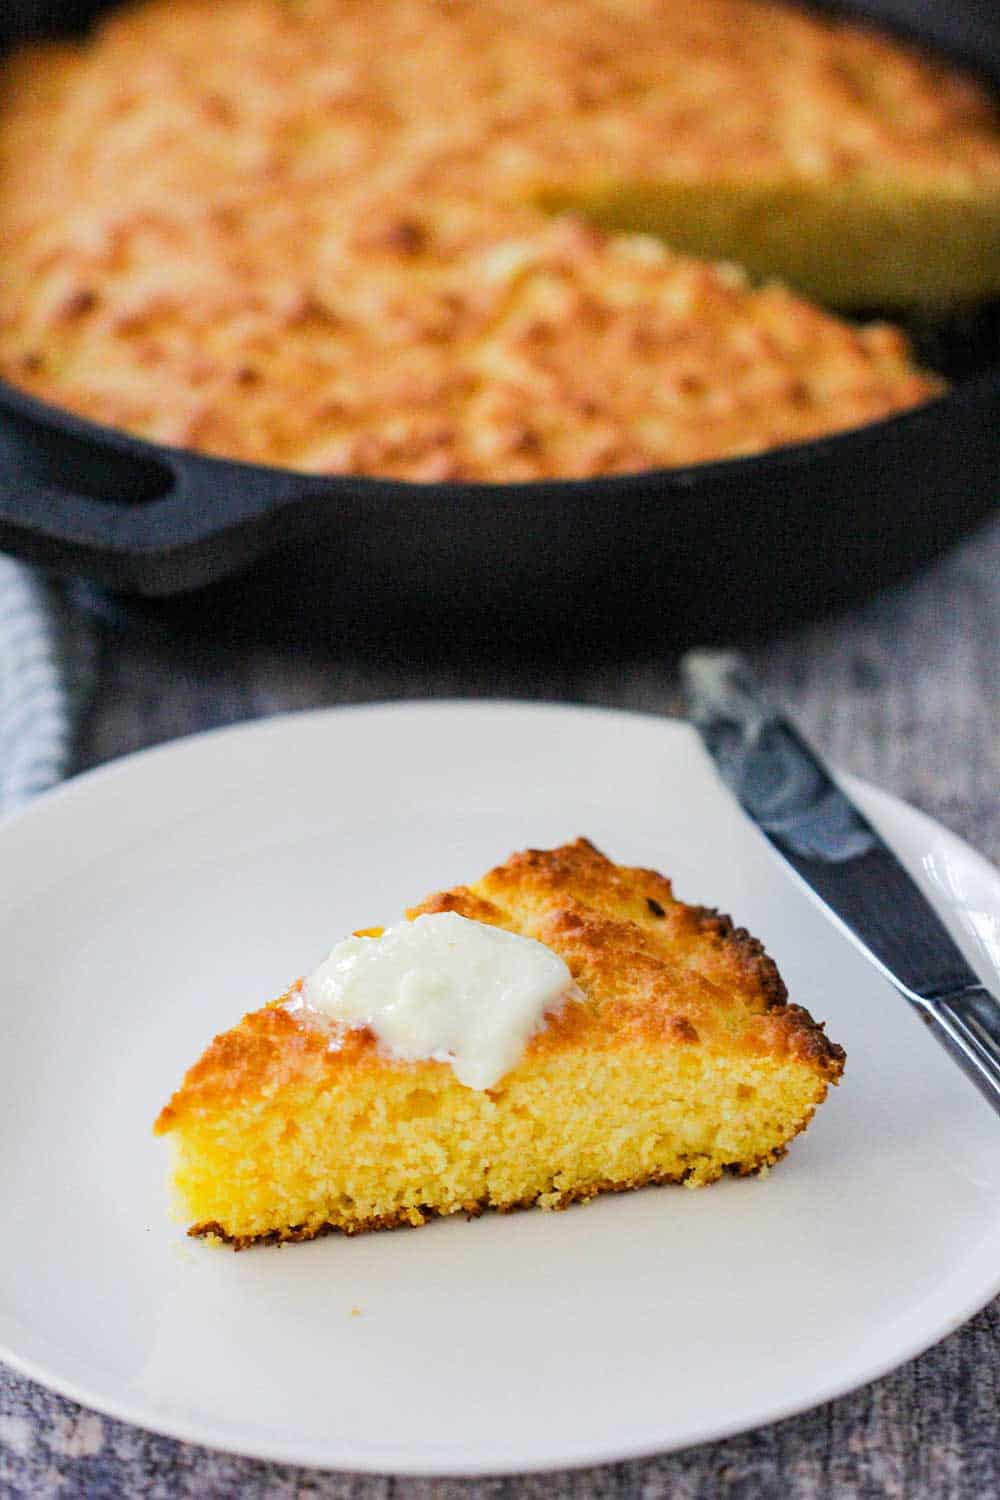 A slice of homemade cornbread with a pad of butter on top next to a skillet of cornbread.